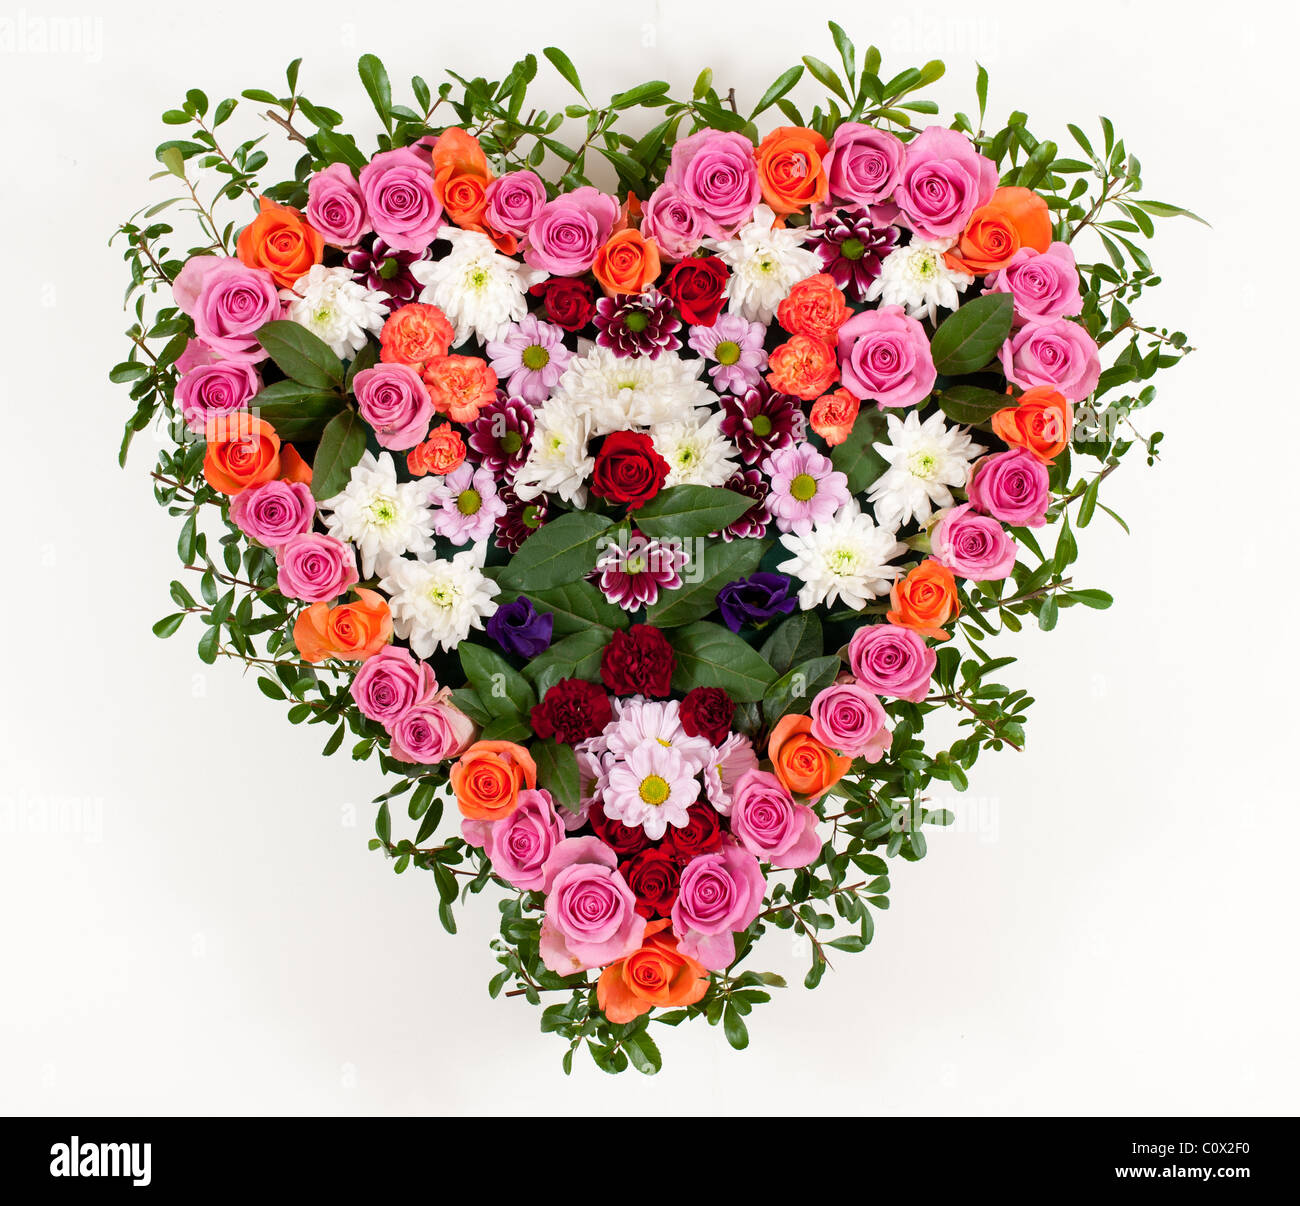 Heart shaped funeral flowers stock photo 34993476 alamy heart shaped funeral flowers izmirmasajfo